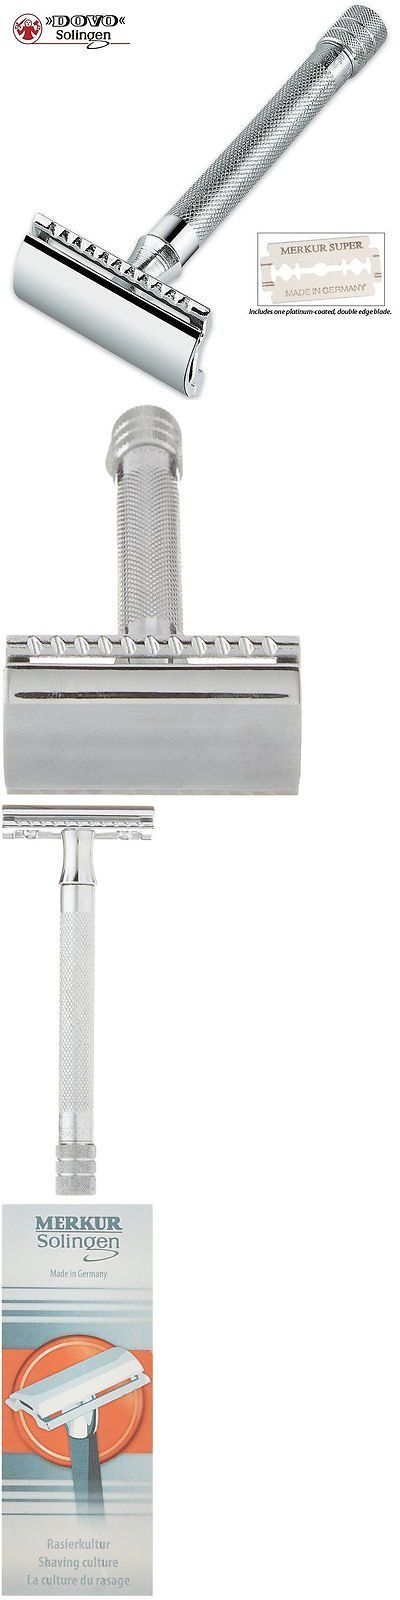 Mens Razors: Double Edge Blades Razor Long Handle Extra Close Shave Merkur Stainless Steel BUY IT NOW ONLY: $30.95